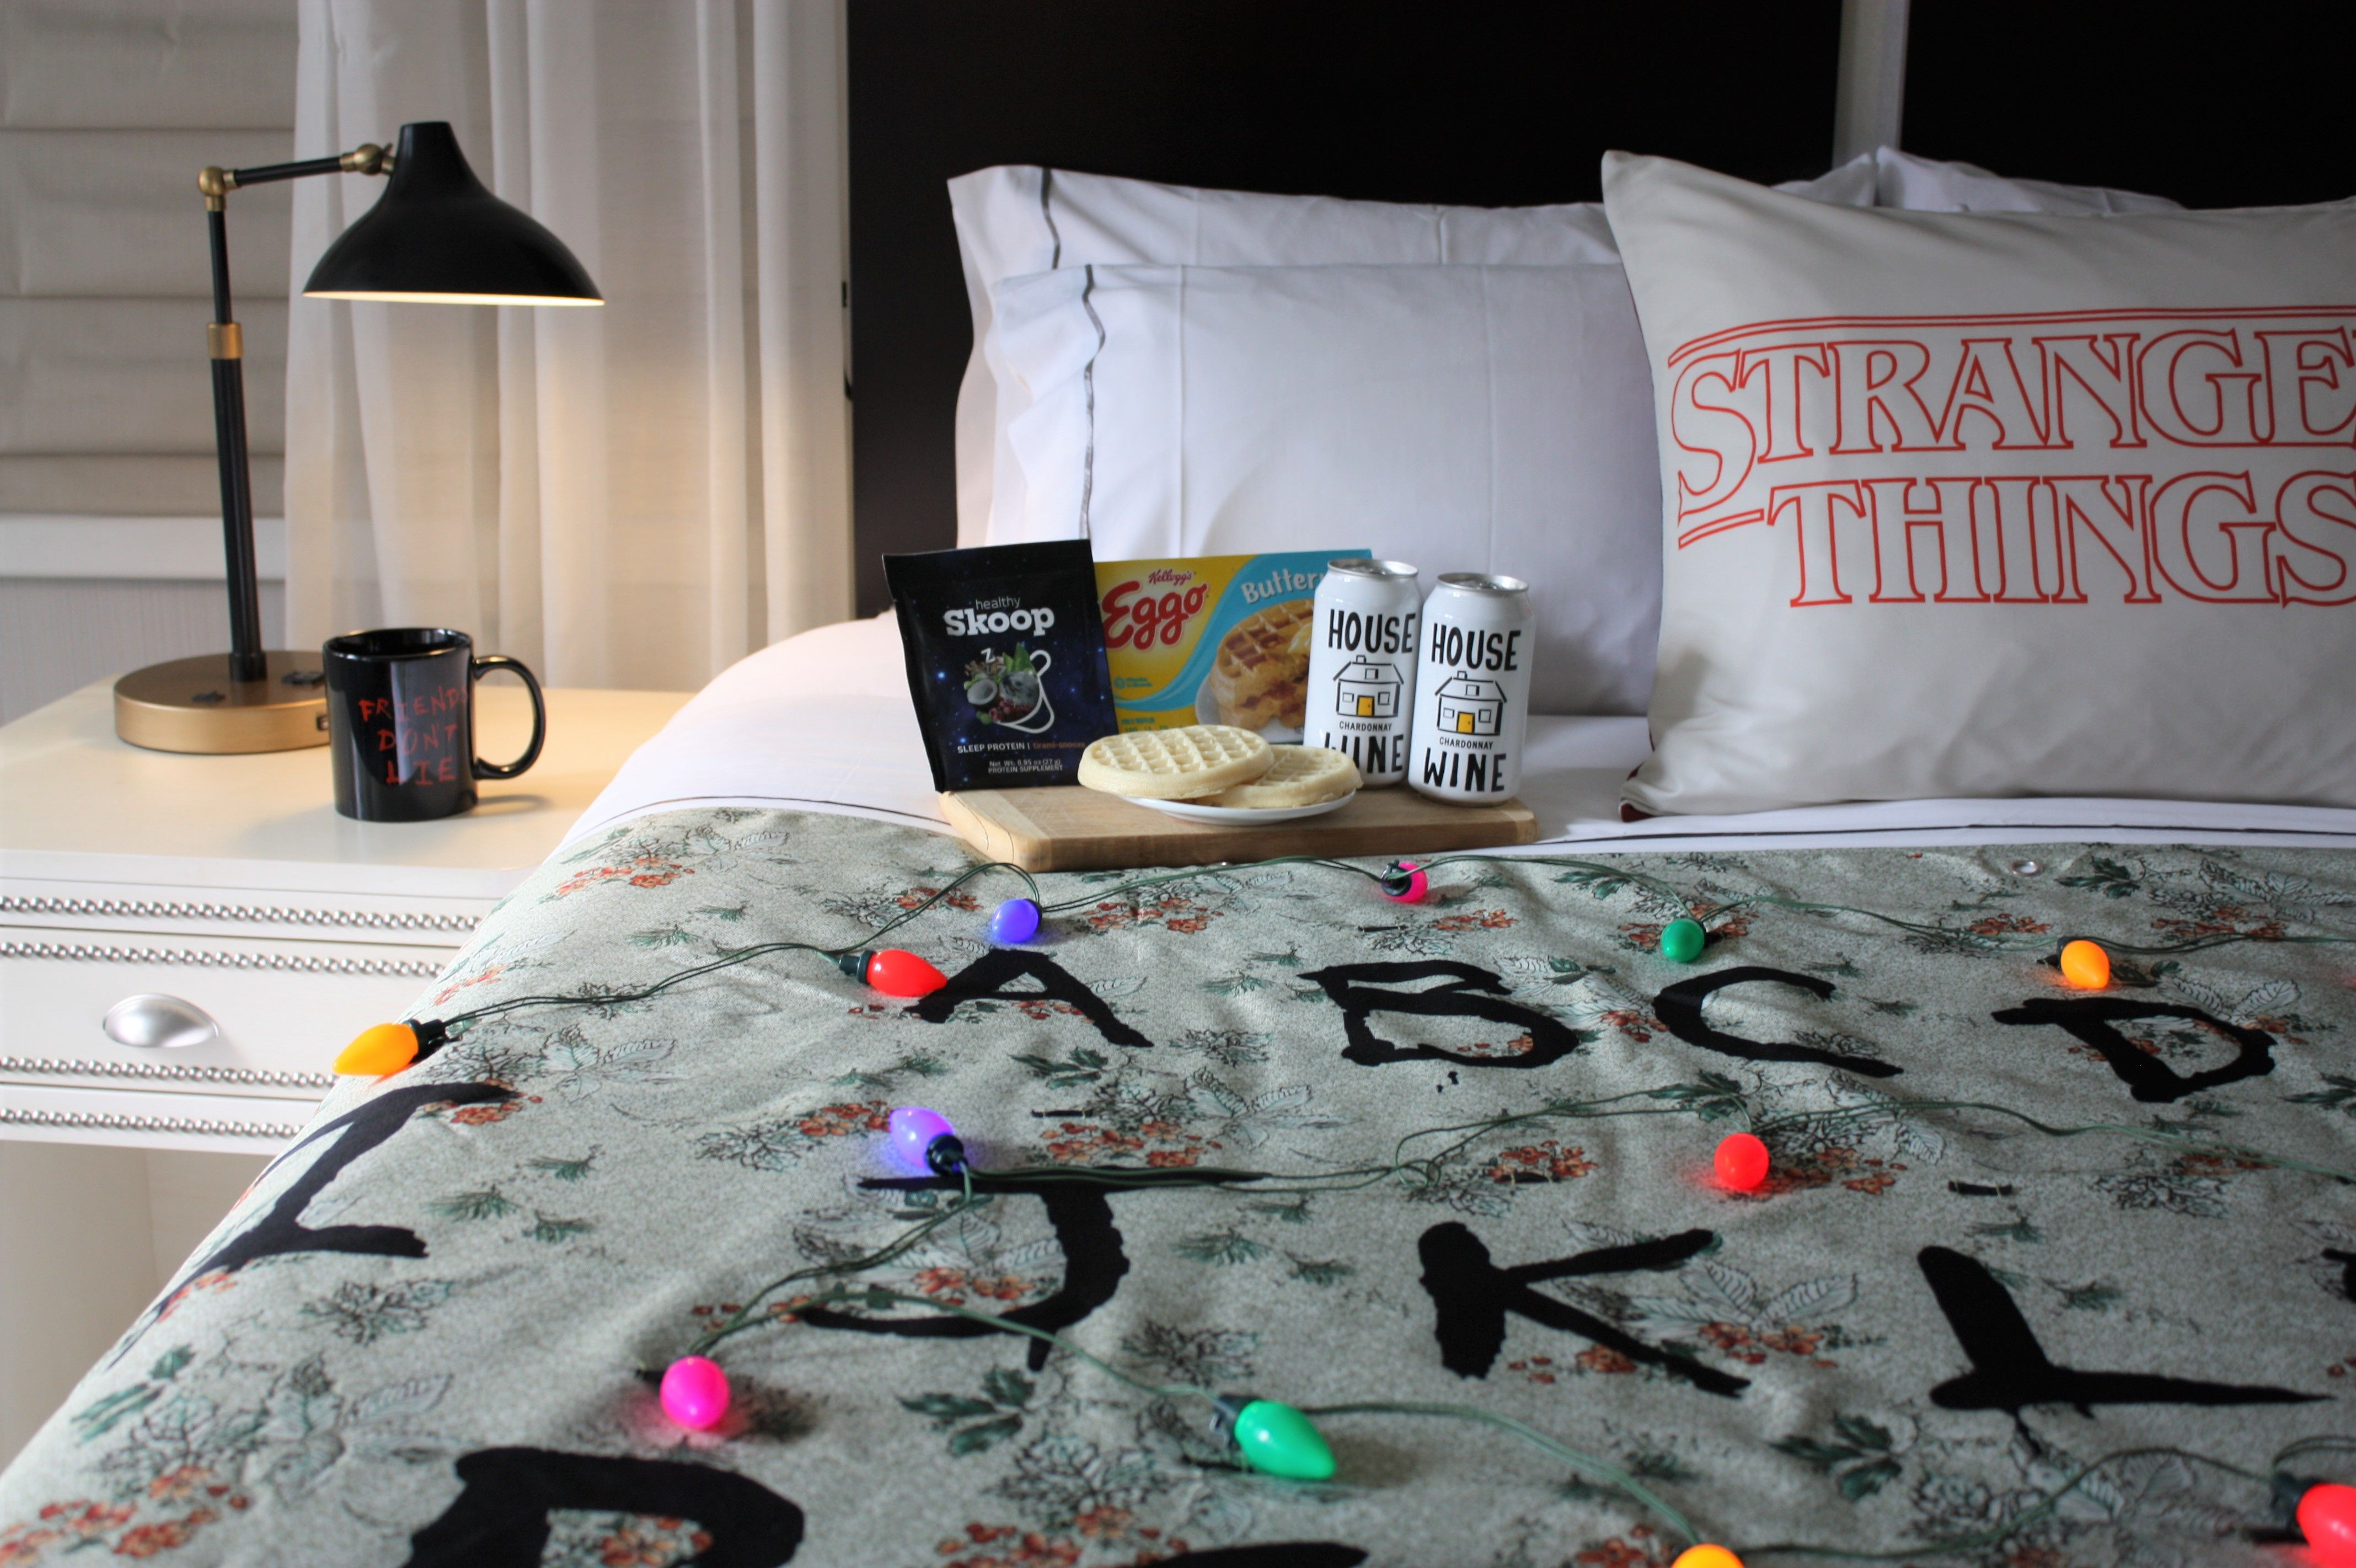 New York City S Gregory Hotel Unveils A Stranger Things Themed Room Mental Floss